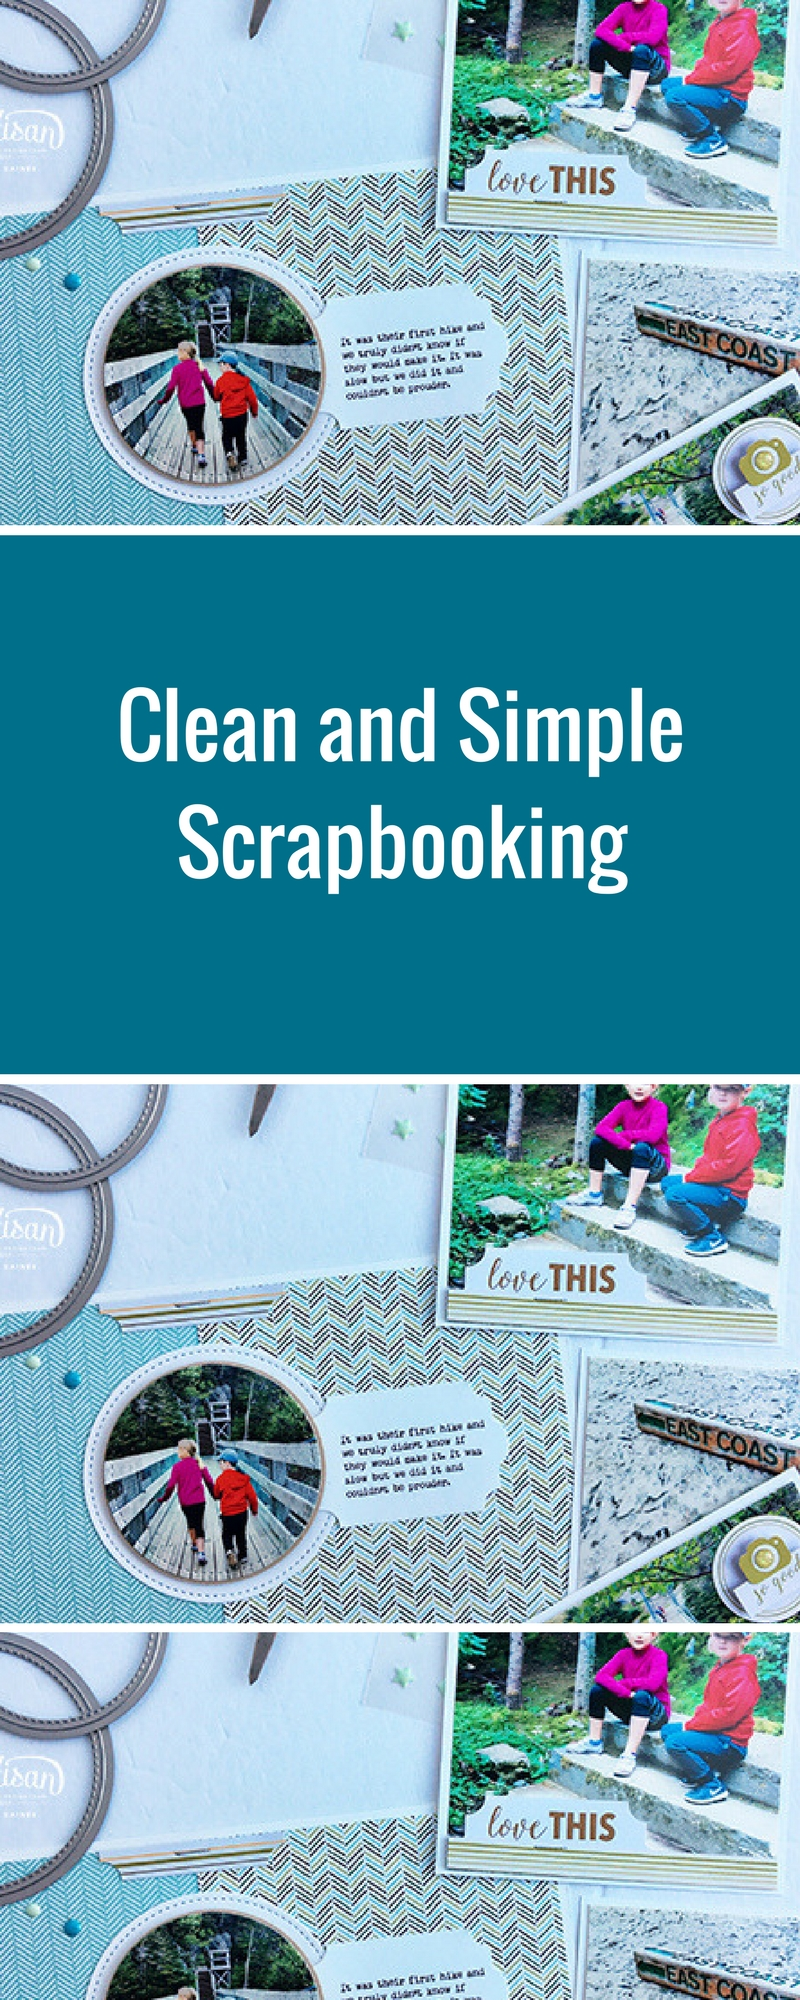 Scrapbooking Clean and Simple | Featuring Stampin' Up! | Page Pockets | Designed by Cathy Caines | Creative Scrapbooker Magazine #scrapbooking #pagepockets